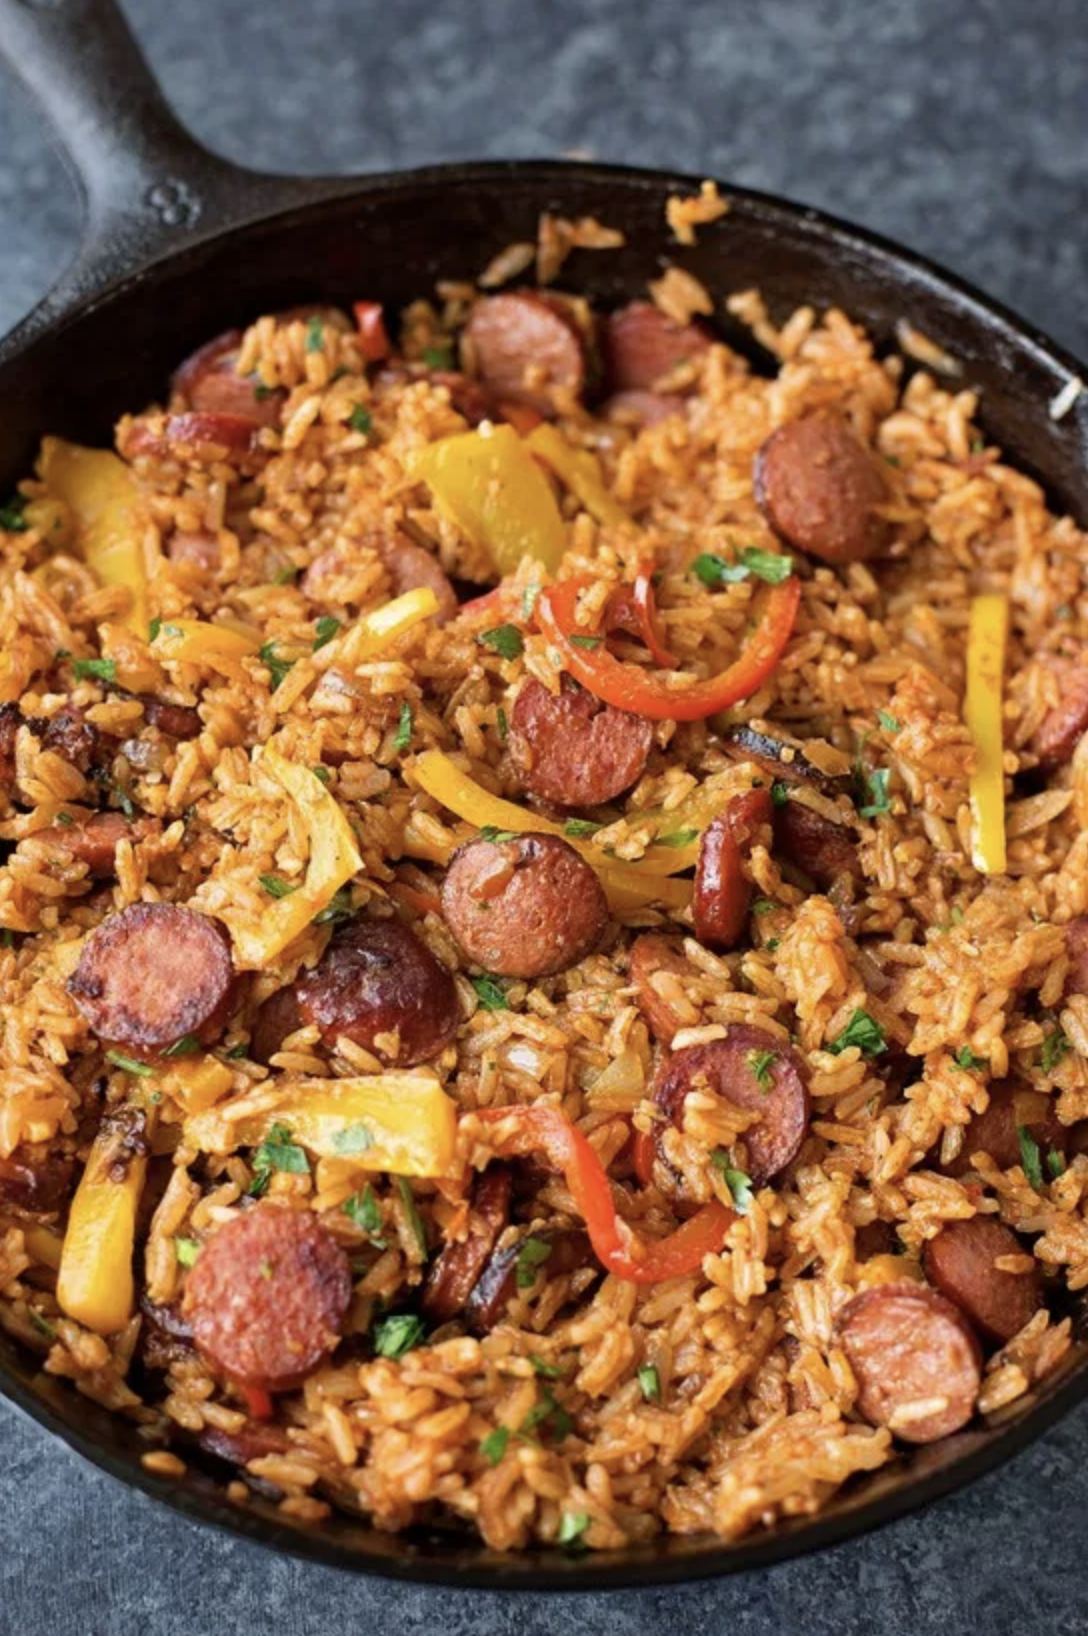 Sausage, Pepper, and Rice Skillet - Smoky kielbasa sizzled with sweet bell pepper, onions and garlic in vibrant tomato sauce. This quick and easy sausage, pepper and rice skillet is downright delicious!